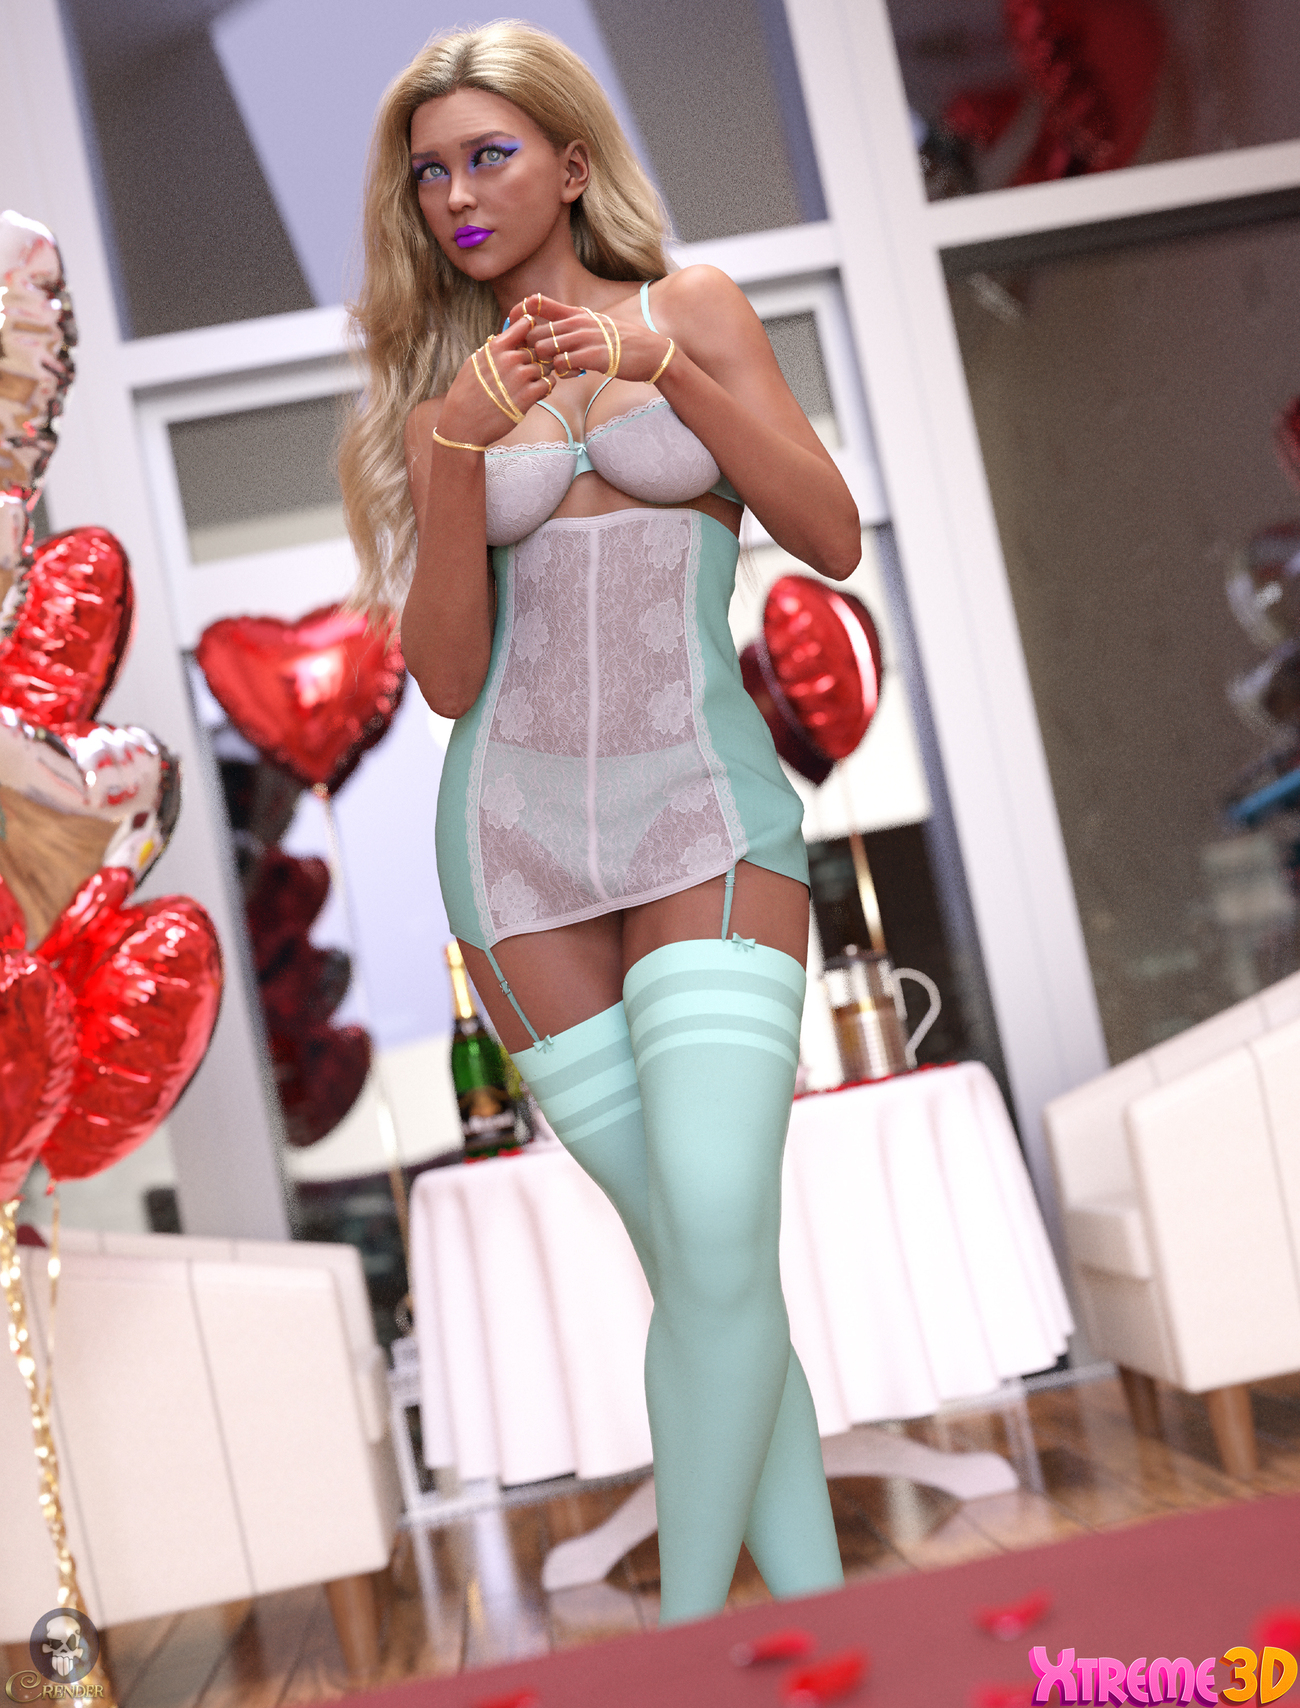 dforce Pretty Woman outfit for G8F 2 by crender